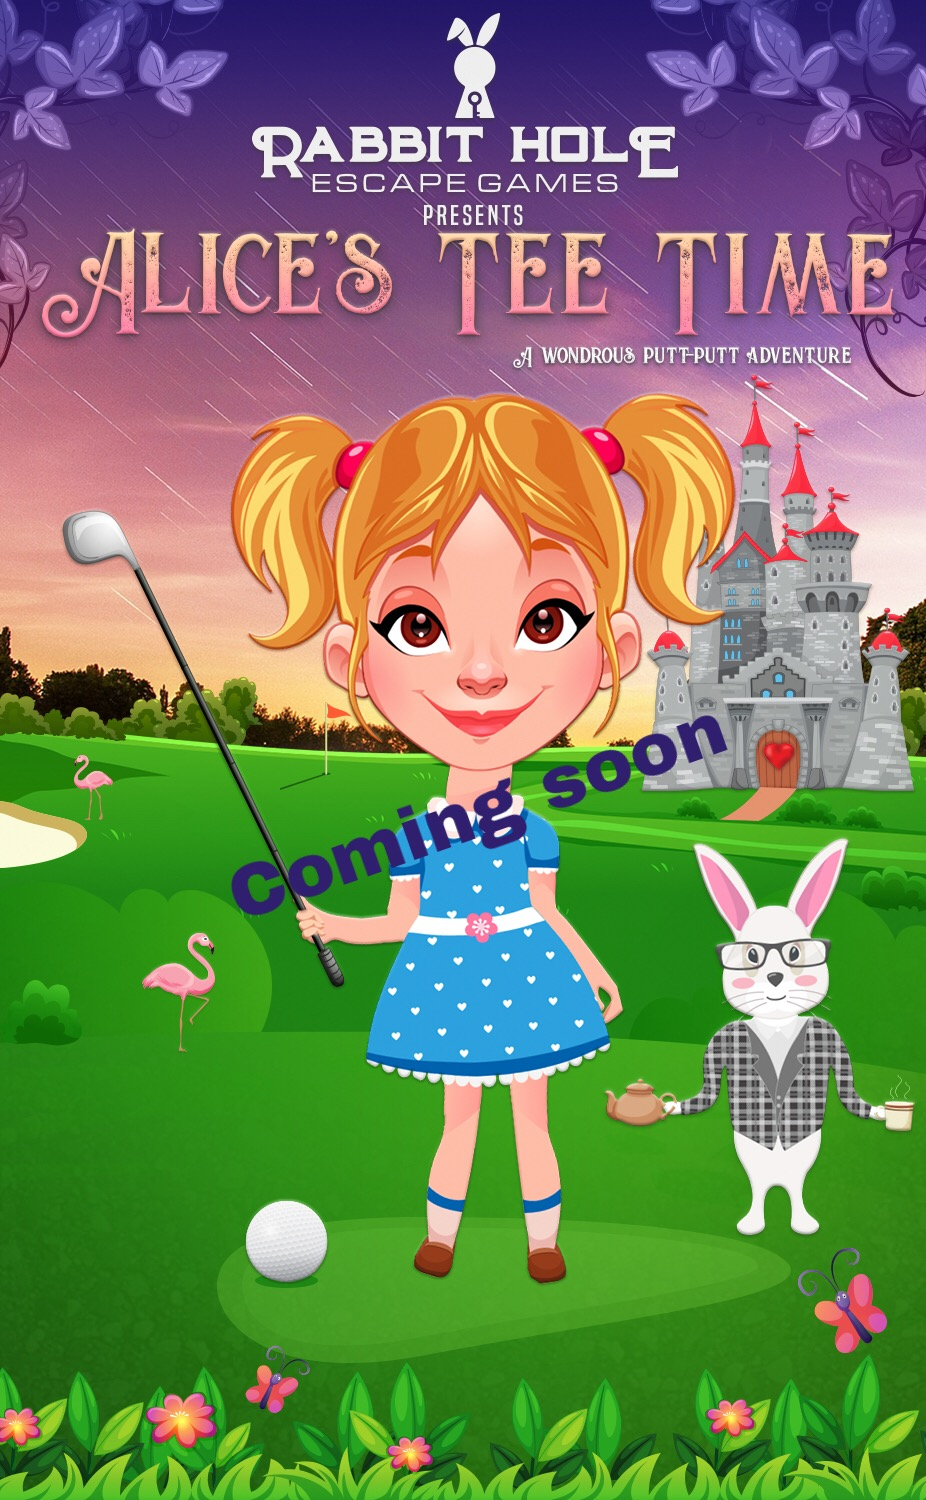 New adventure soon! - Escape Room elements + Mini-Golf in an Alice theme